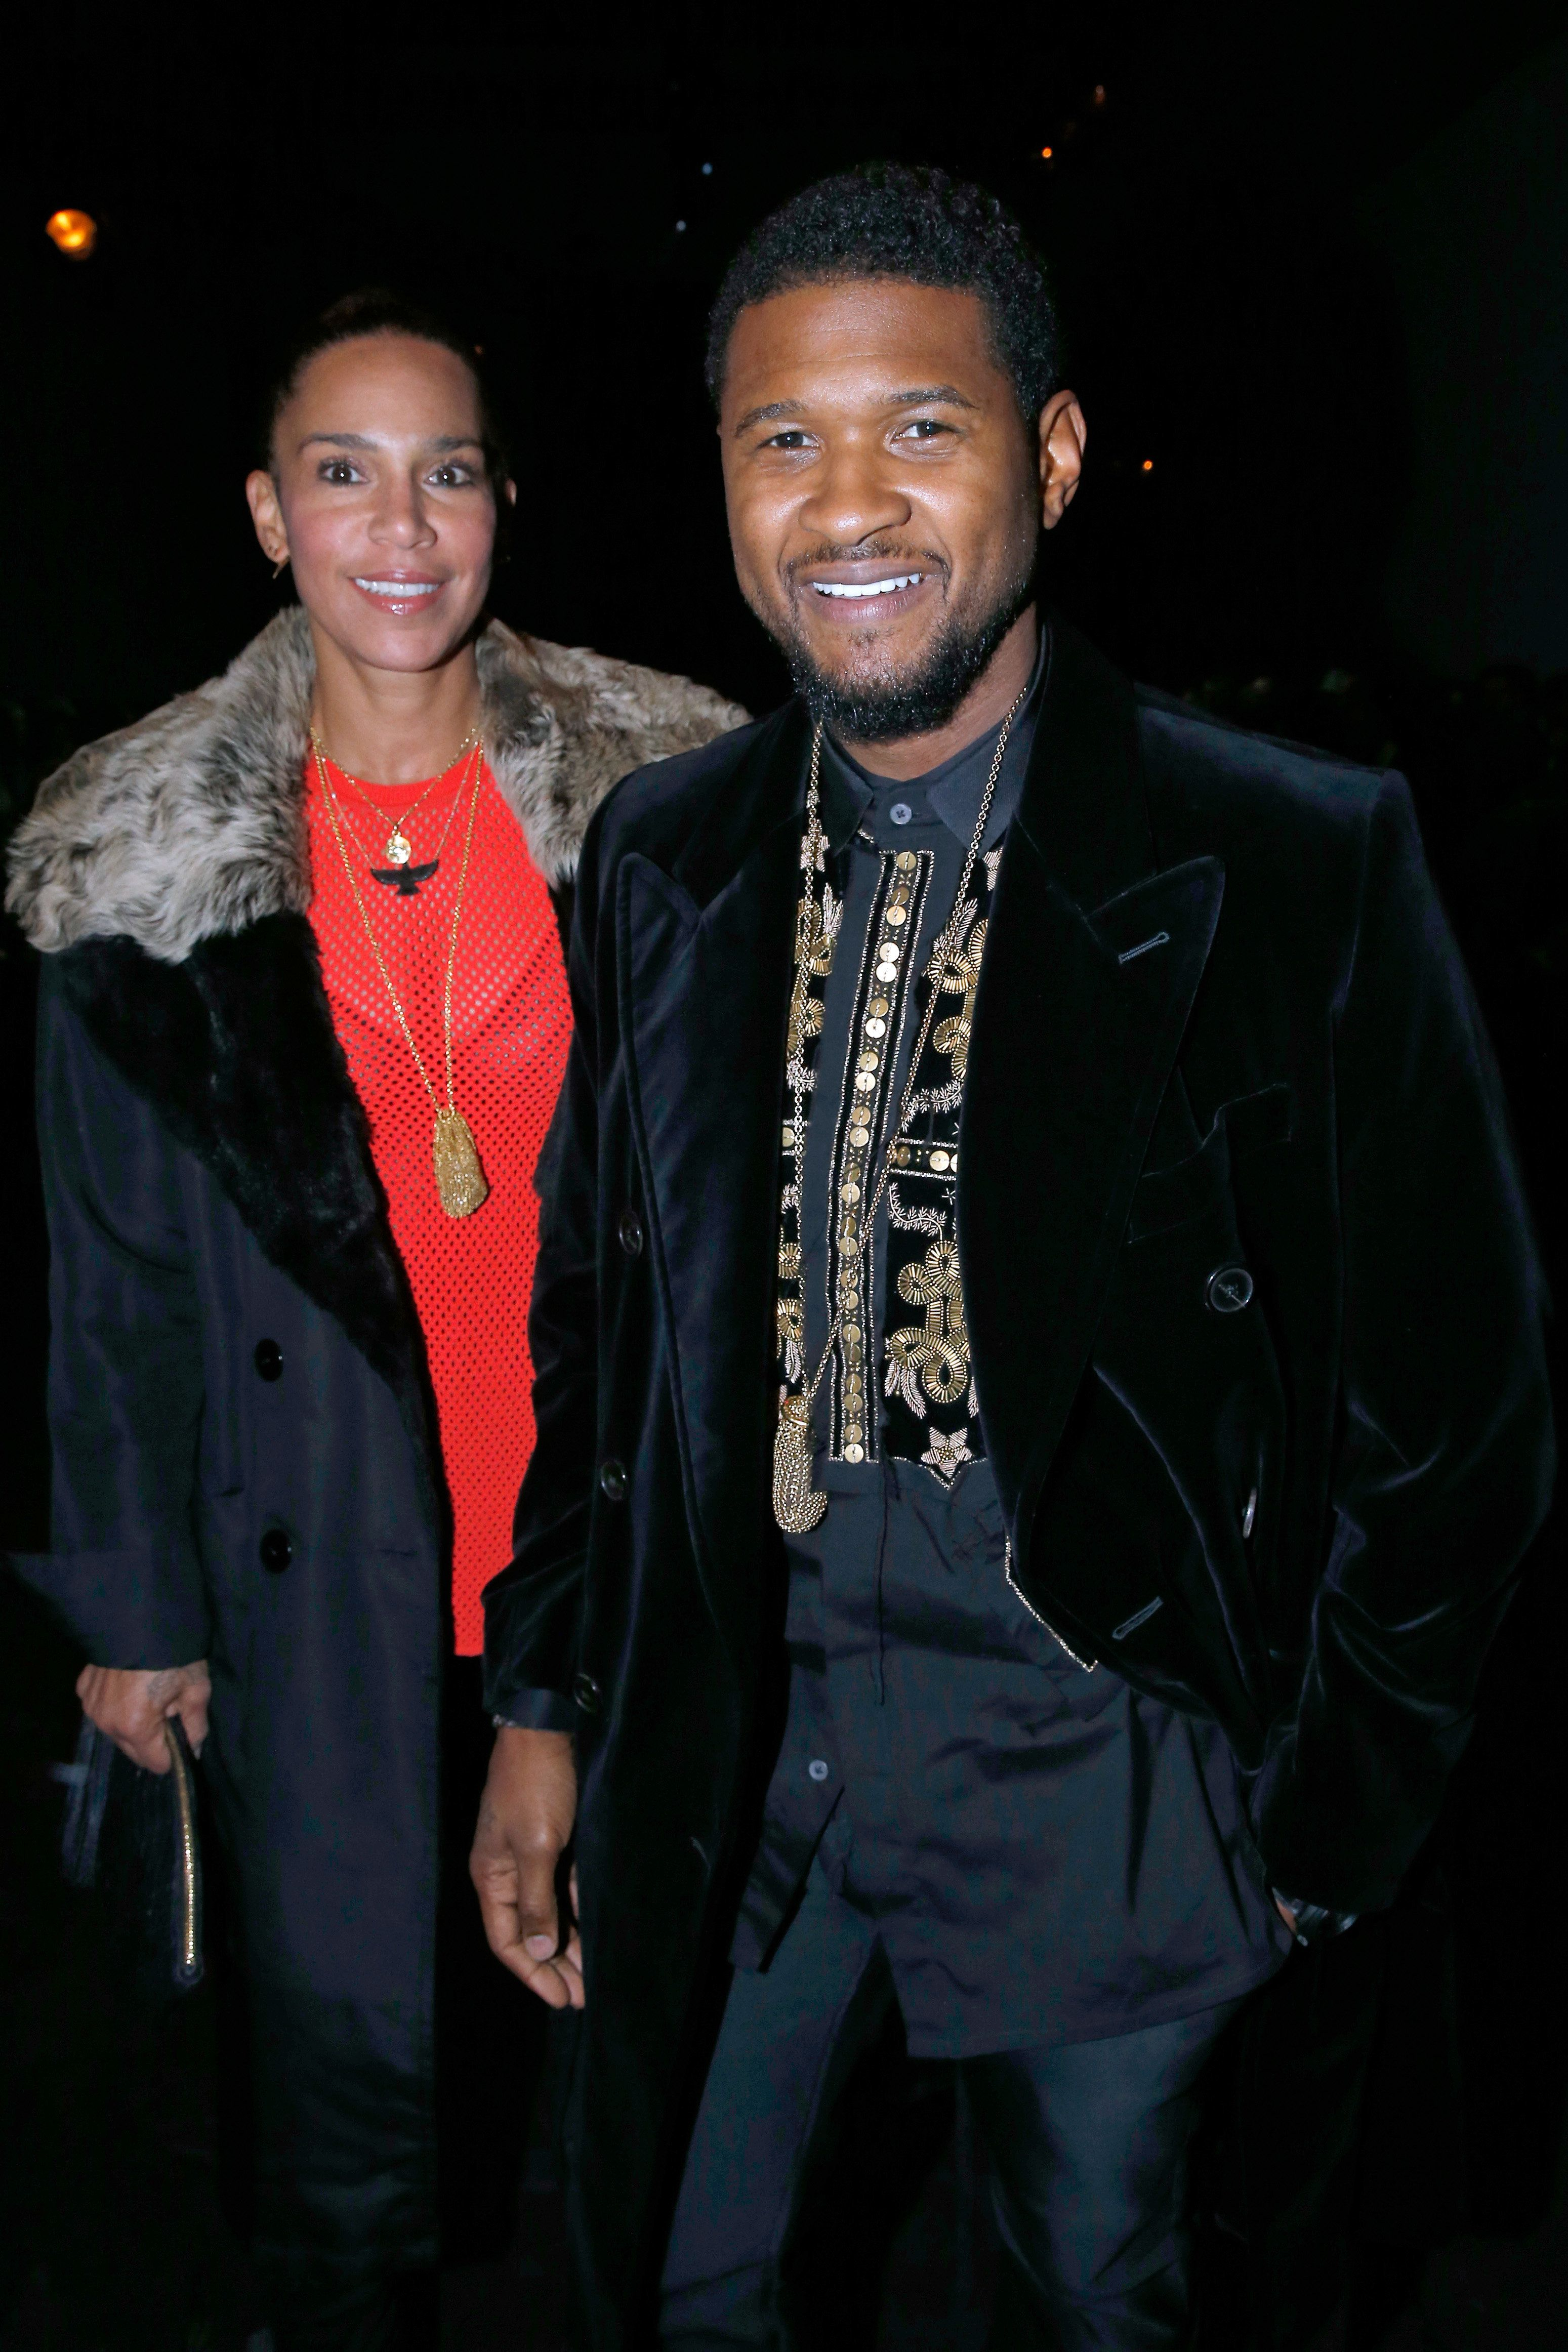 PARIS, FRANCE - JANUARY 20:  Singer Usher and his wife Grace Miguel attend the Berluti Menswear Fall/Winter 2017-2018 show as part of Paris Fashion Week on January 20, 2017 in Paris, France.  (Photo by Bertrand Rindoff Petroff/Getty Images)